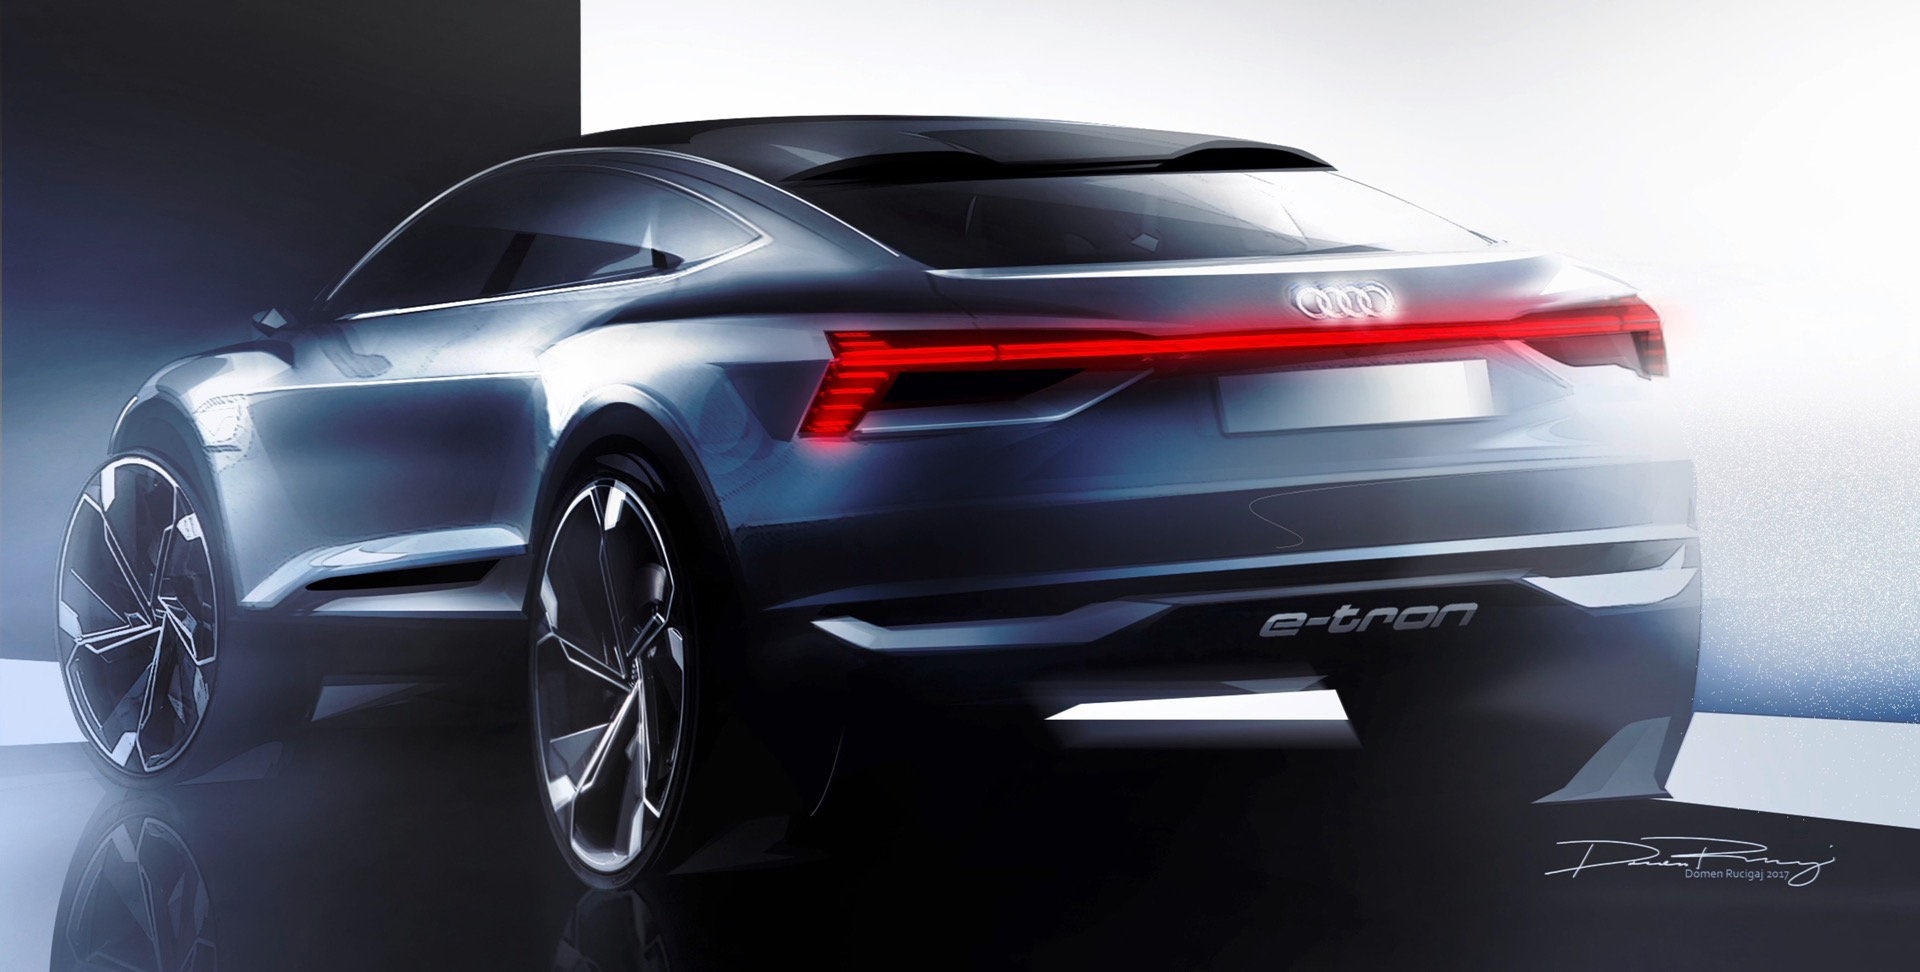 Both The New Audi Rs7 And E Tron Sportback Will Be All Showing Off Sides Of Performance Scale With Internal Combustion